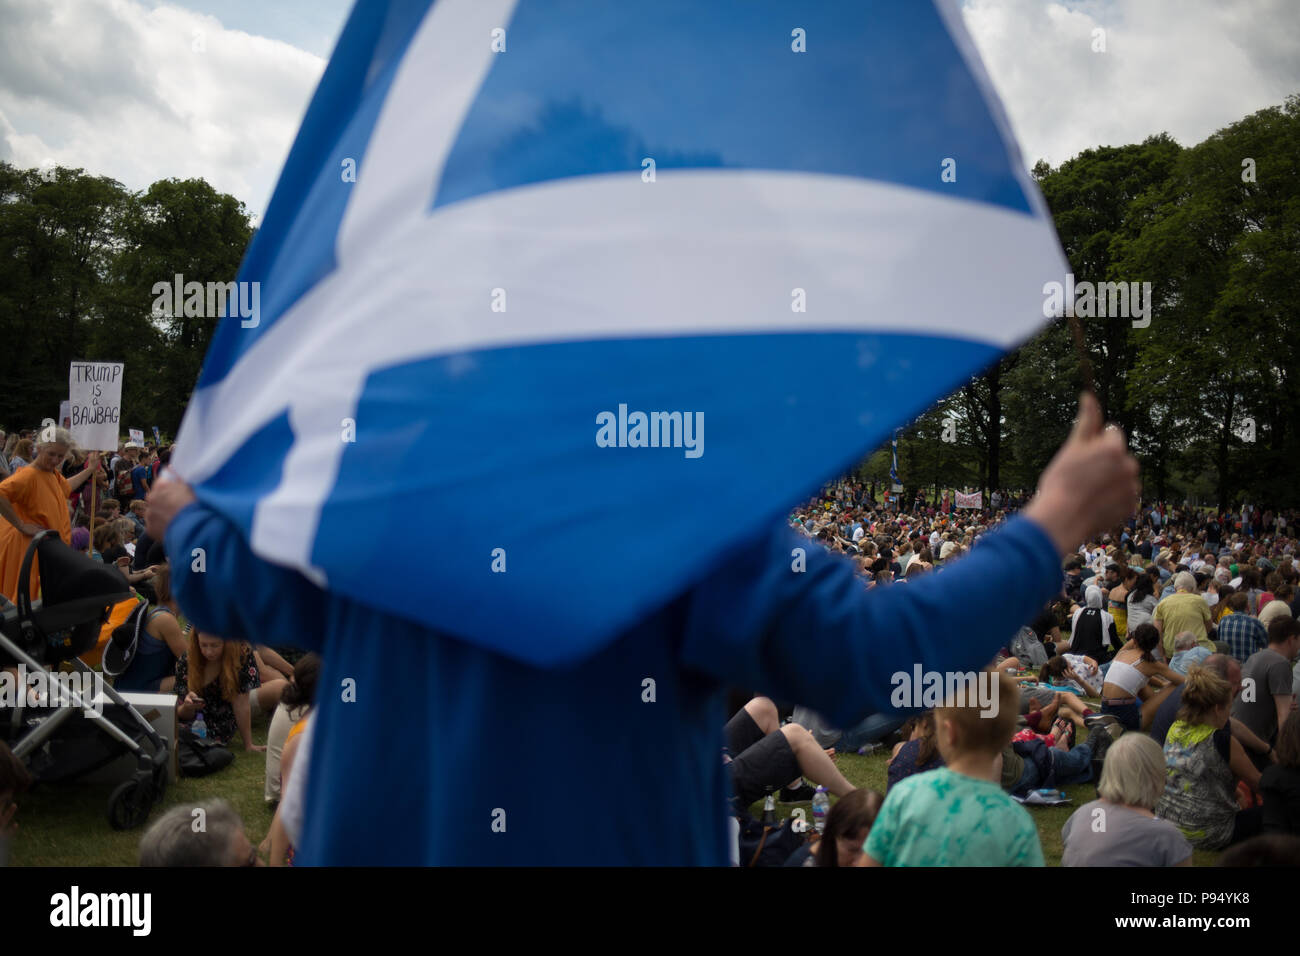 Edinburgh, Scotland, 14 July 2018. Carnival of Resistance anti-Trump rally, coinciding with the visit of President Donald Trump to Scotland on a golfing weekend, in Edinburgh, Scotland, on 14 July 2018. Credit: jeremy sutton-hibbert/Alamy Live News - Stock Image